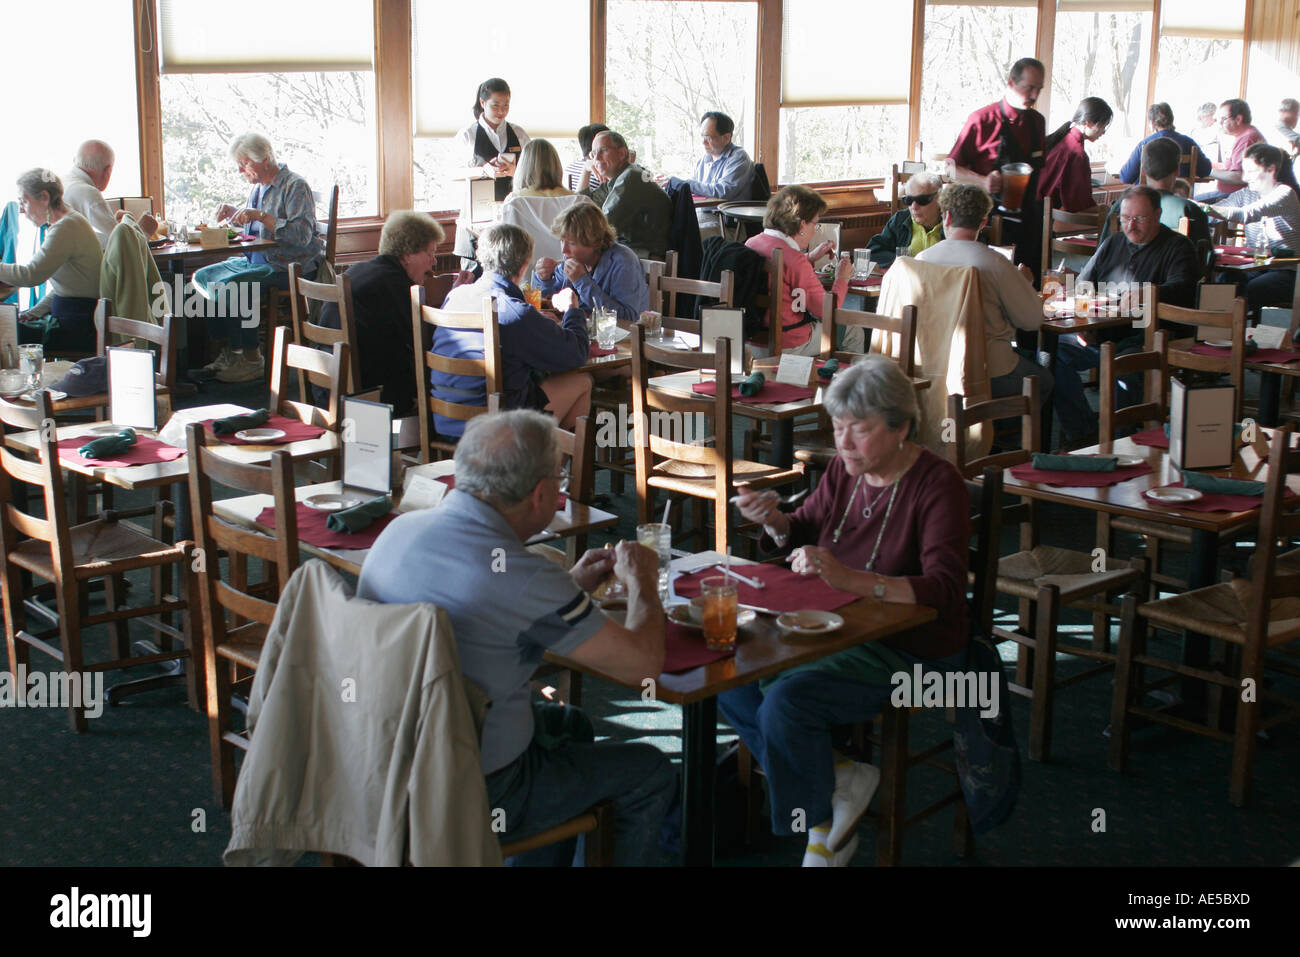 Shenandoah National Park VirginiaSkyland Resort Pollack Dining Room eating - Stock Image